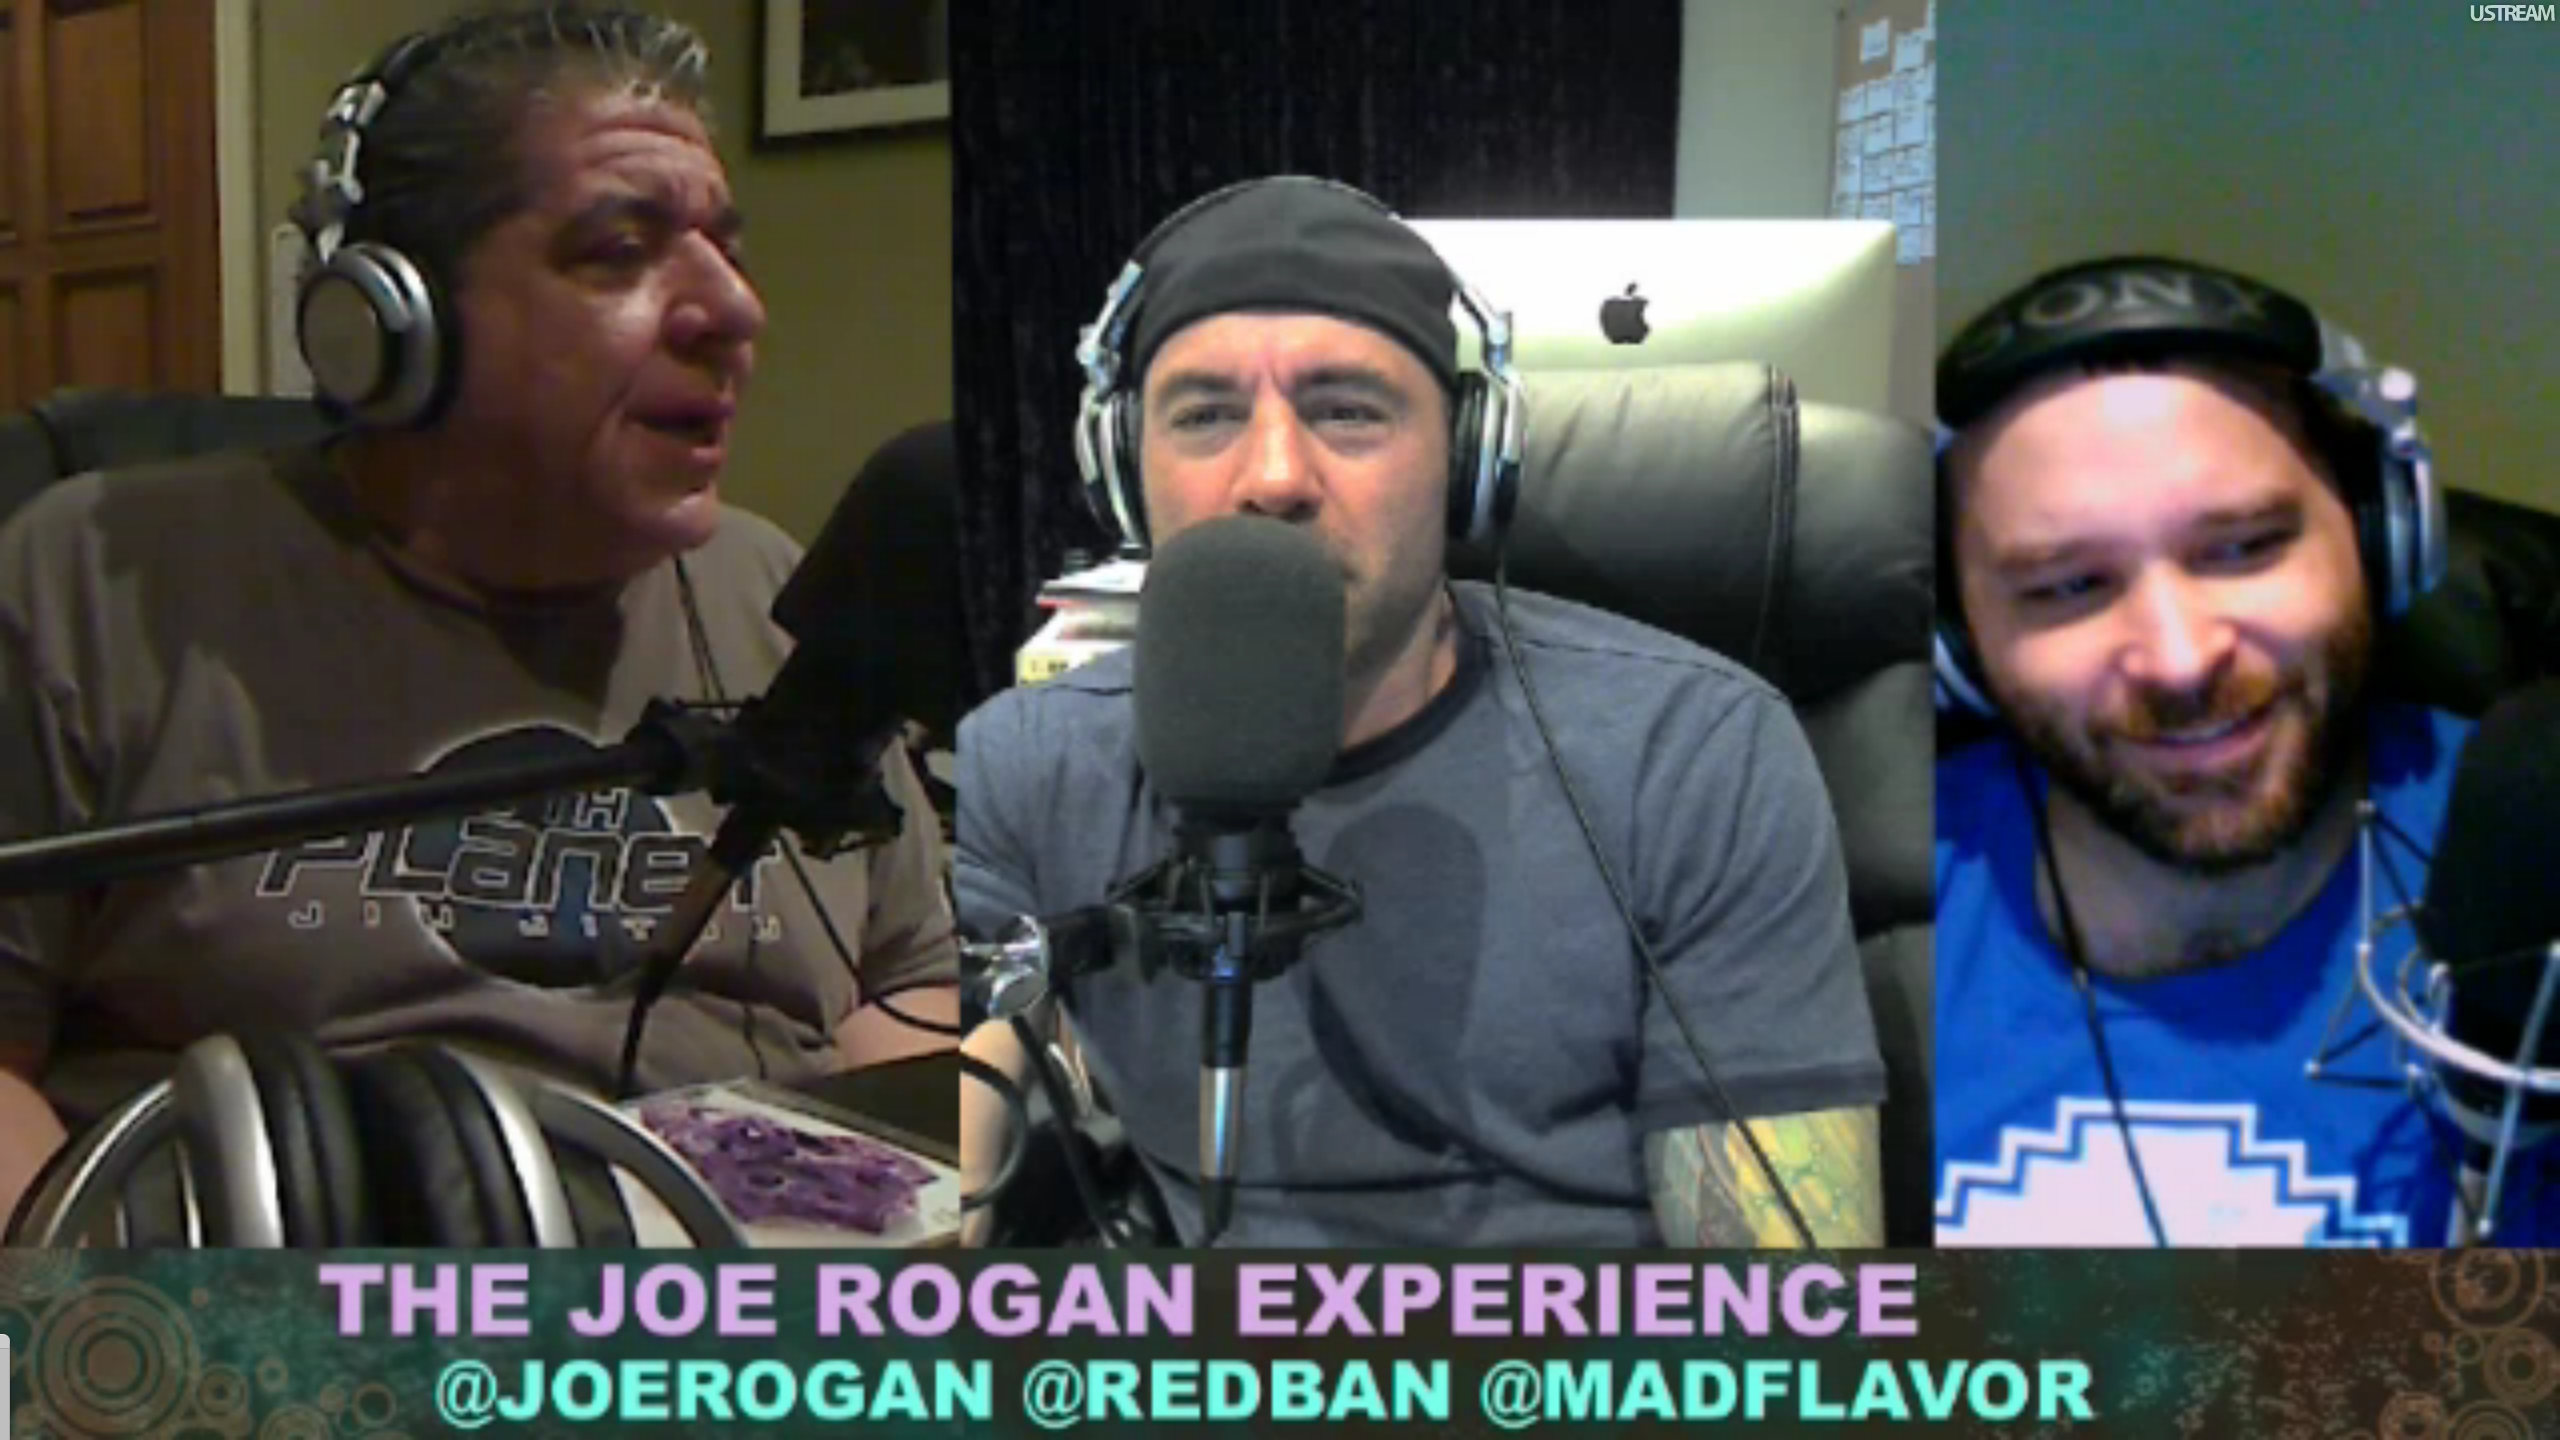 The Joe Rogan Experience PODCAST #153 - Joey Diaz, Brian Redban